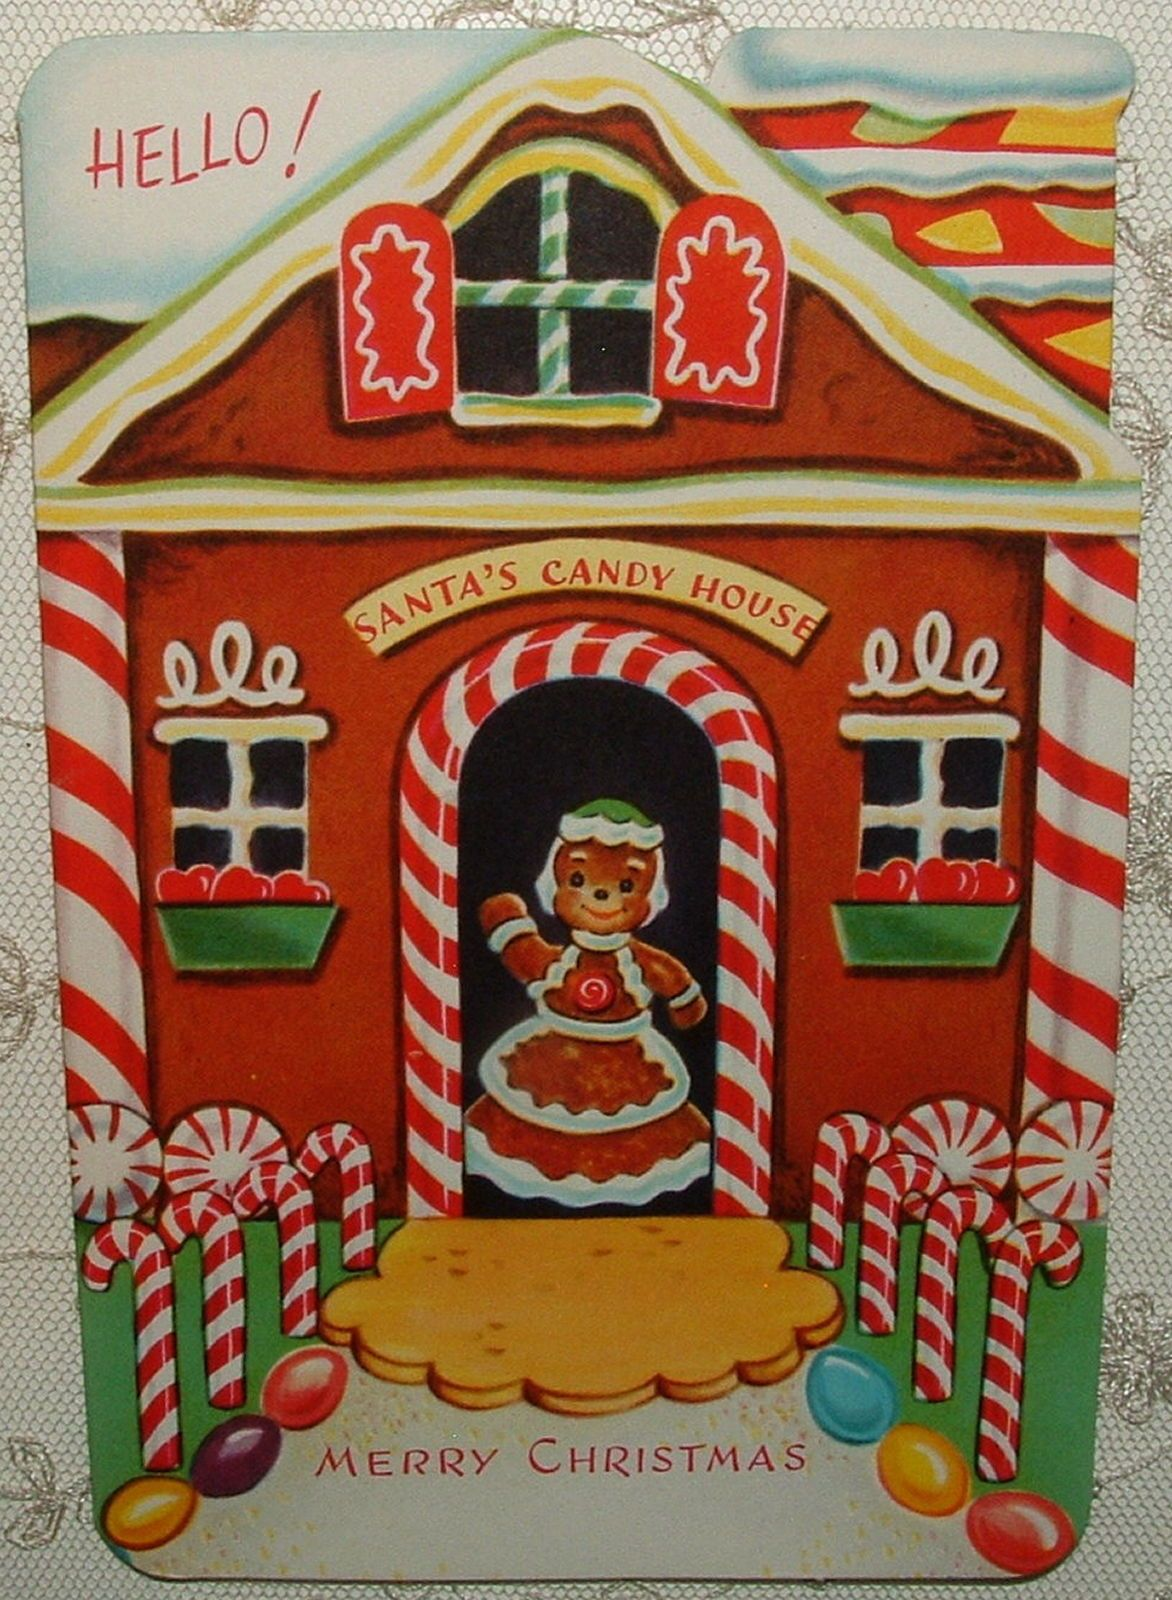 Mary Frances Candy Lane Gingerbread House Xmas Holiday Red Bag Black Bag New 349 00 Vintage Christmas Cards Vintage Christmas Greeting Cards Vintage Christmas